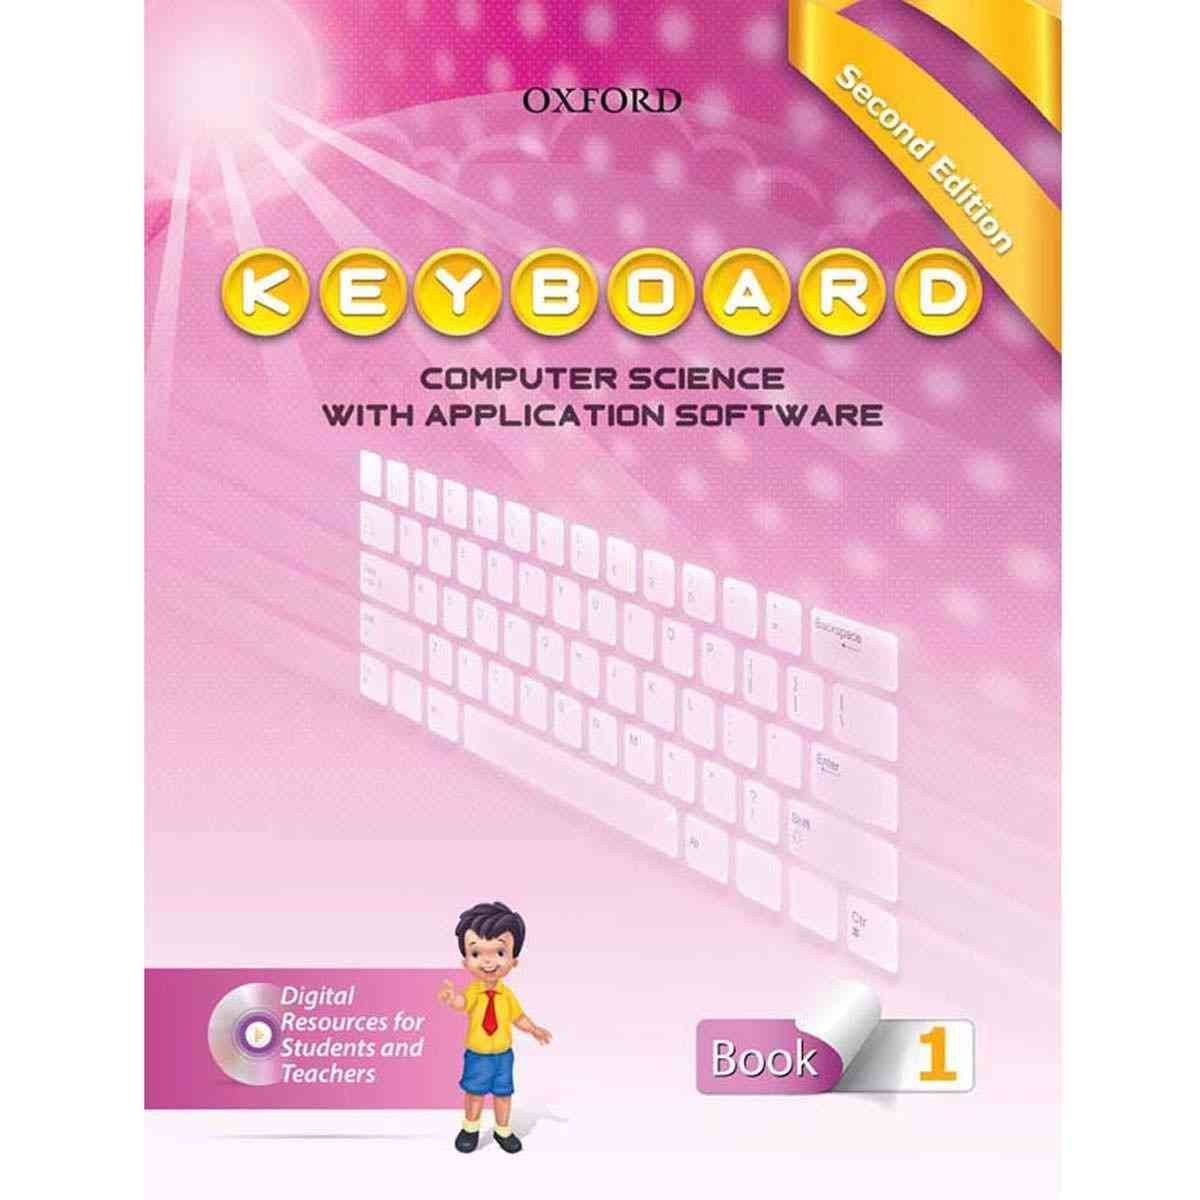 Oxford Books Keyboard Book 1 Second Edition